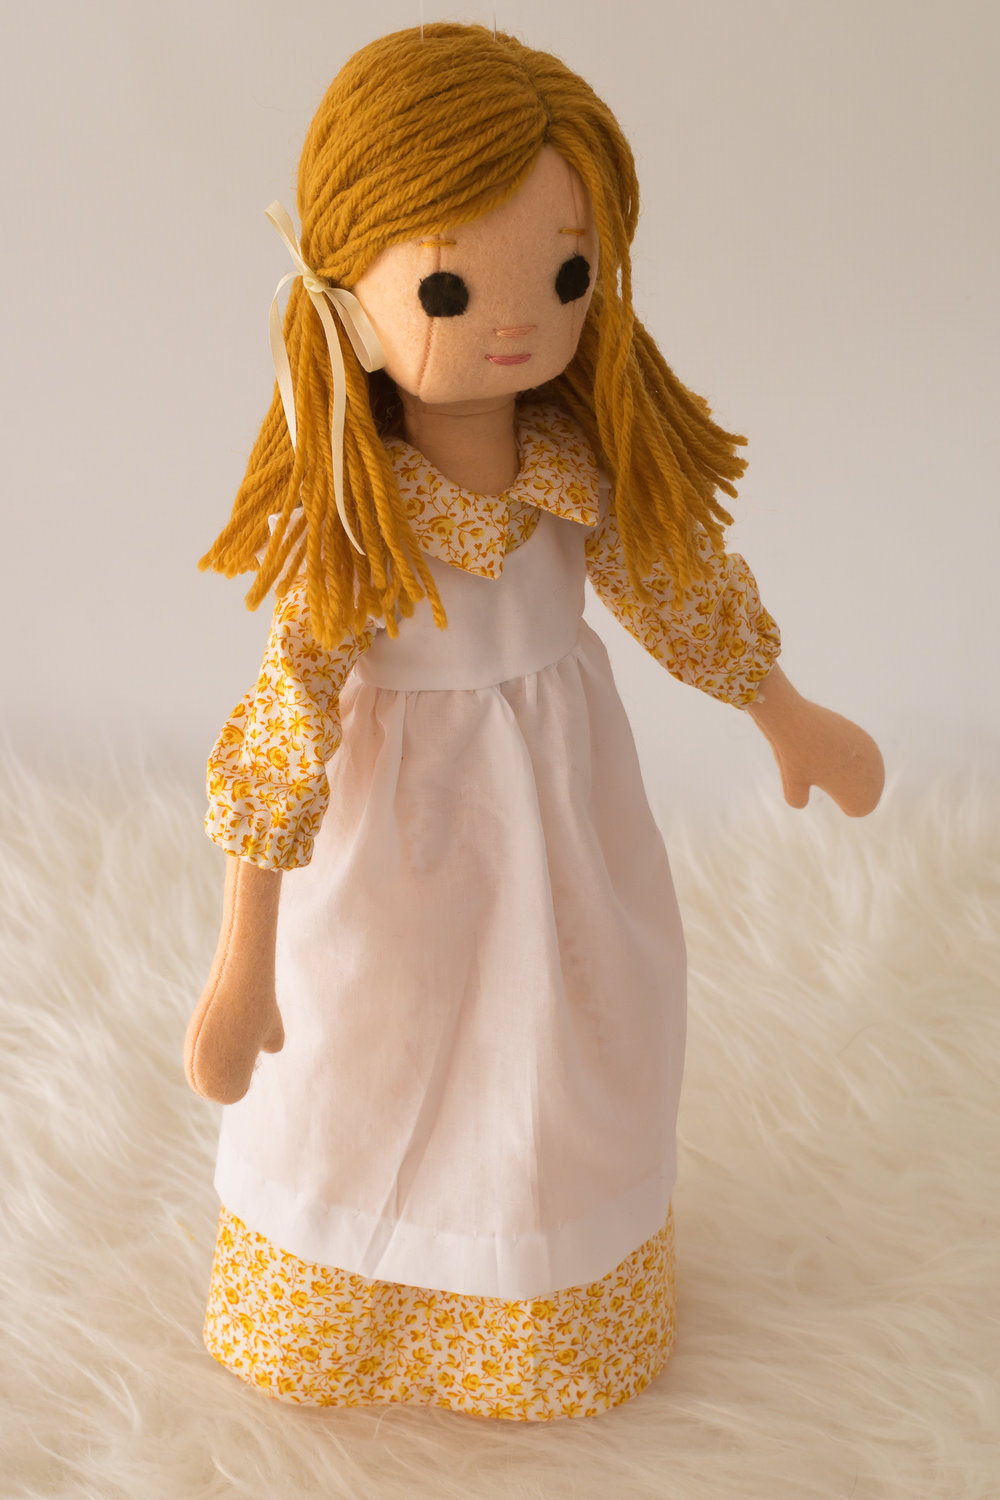 ExtraSmall Phoebe wears a prairie dress made from Little House on the Prairie fabric.